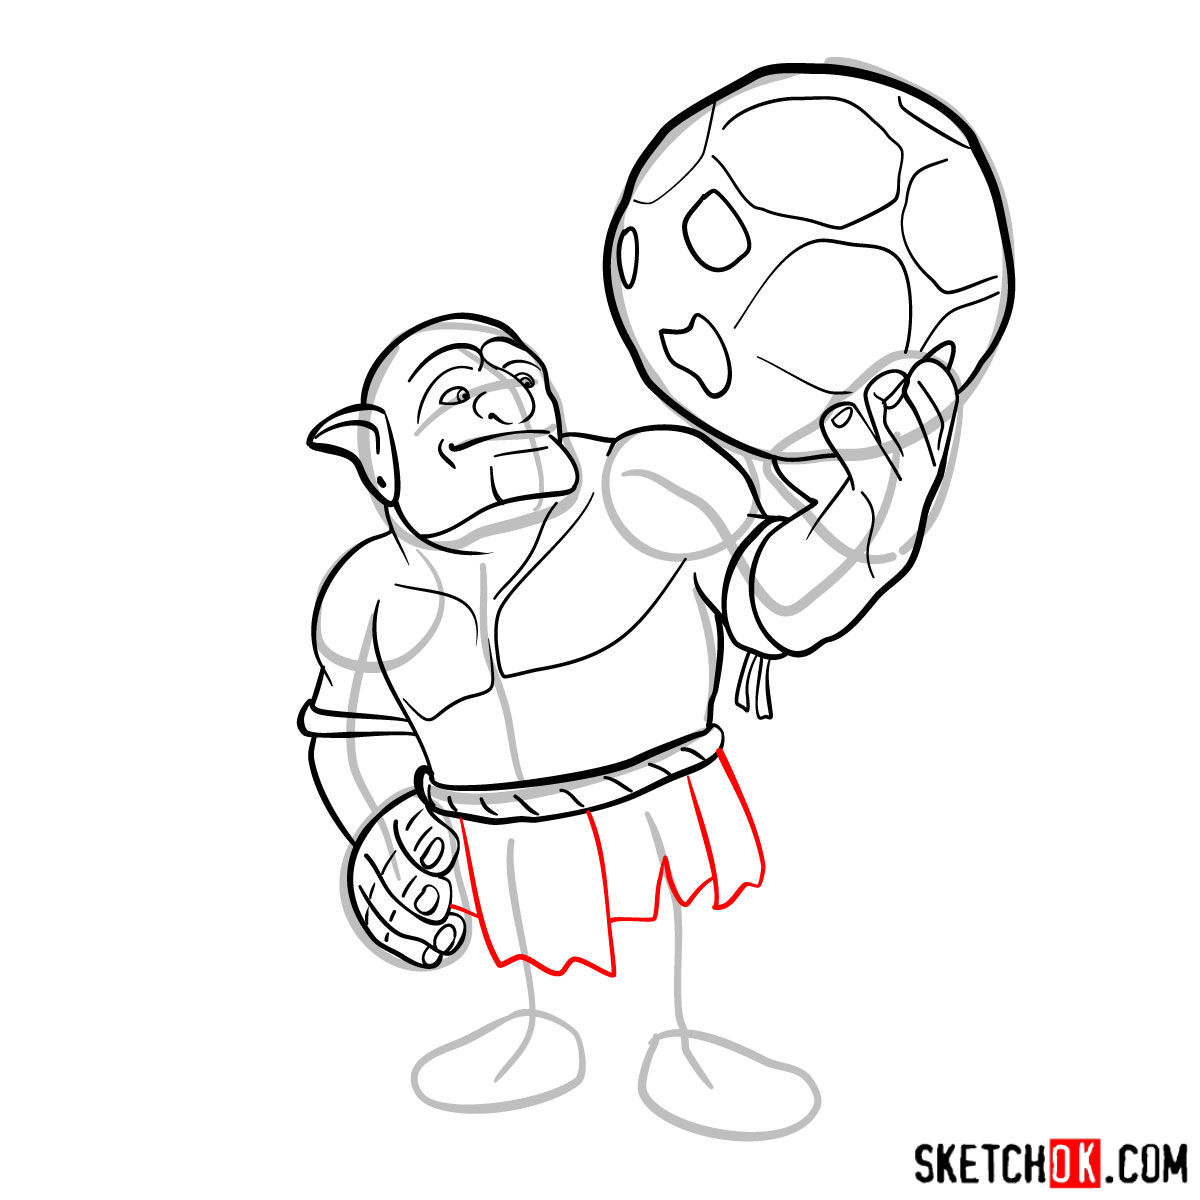 How to draw Bowler from Clash of Clans - step 08